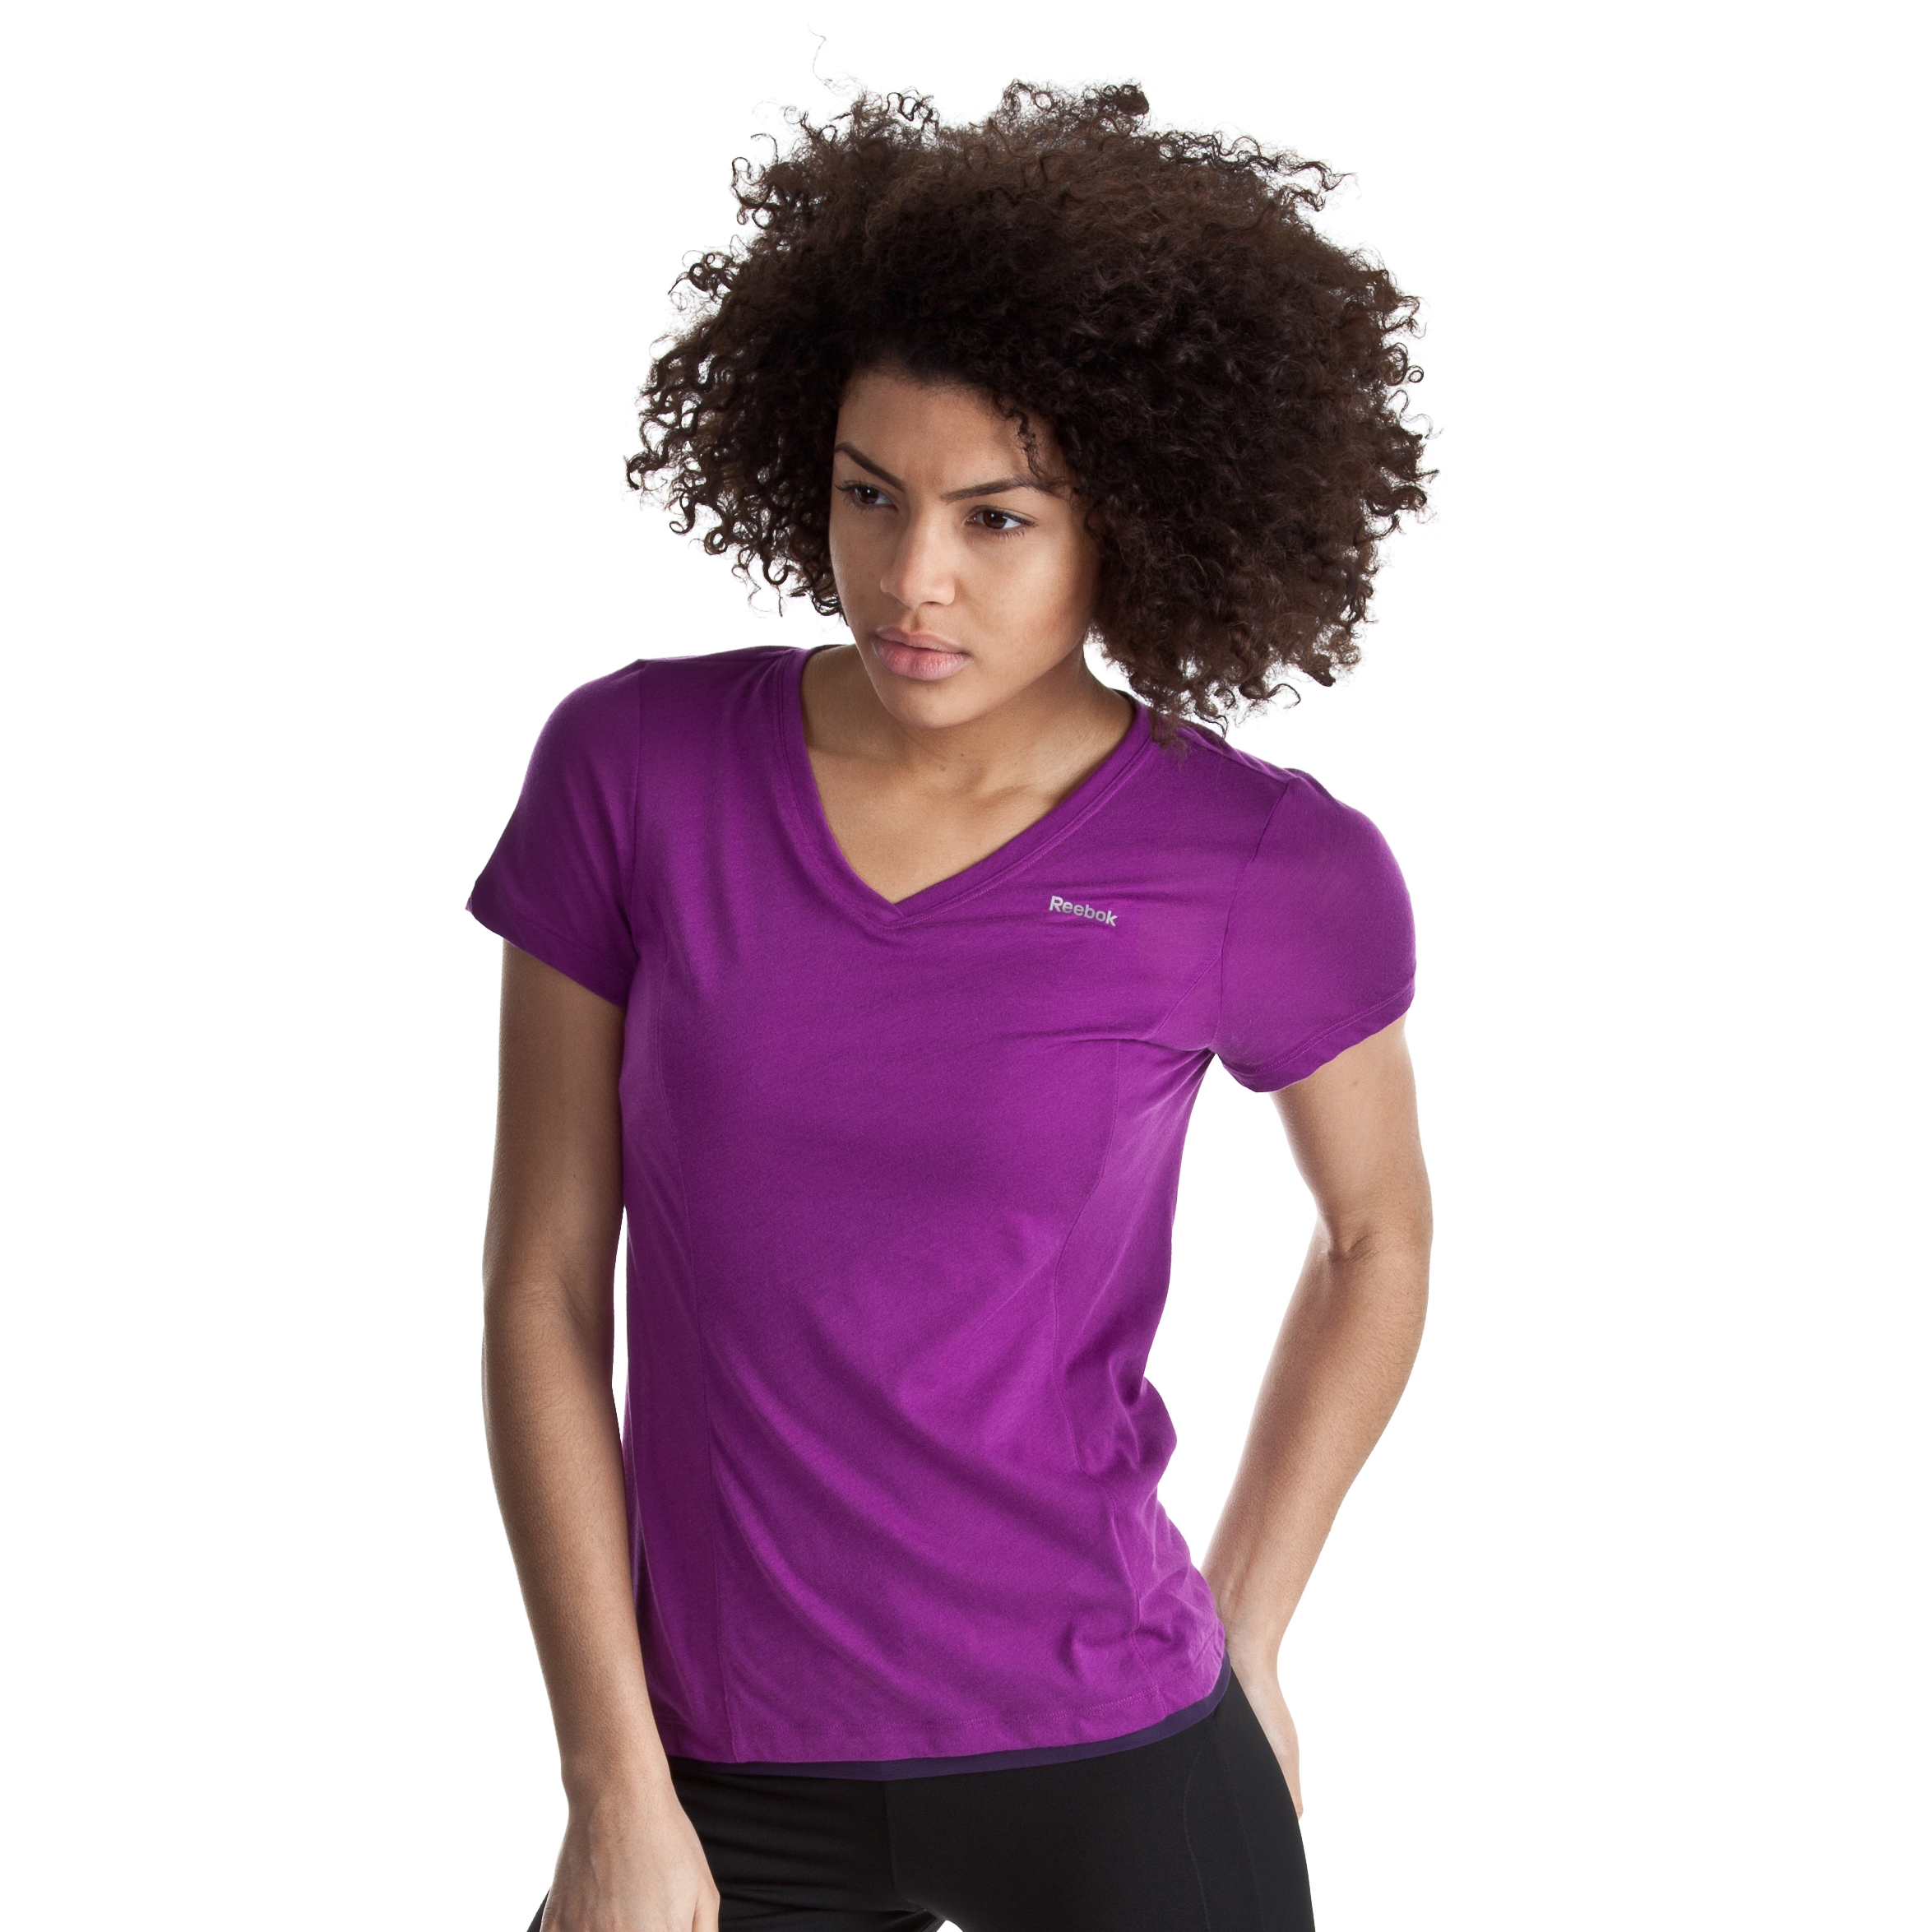 Reebok Double Layer Shapewear Tee - Aubergine - Women